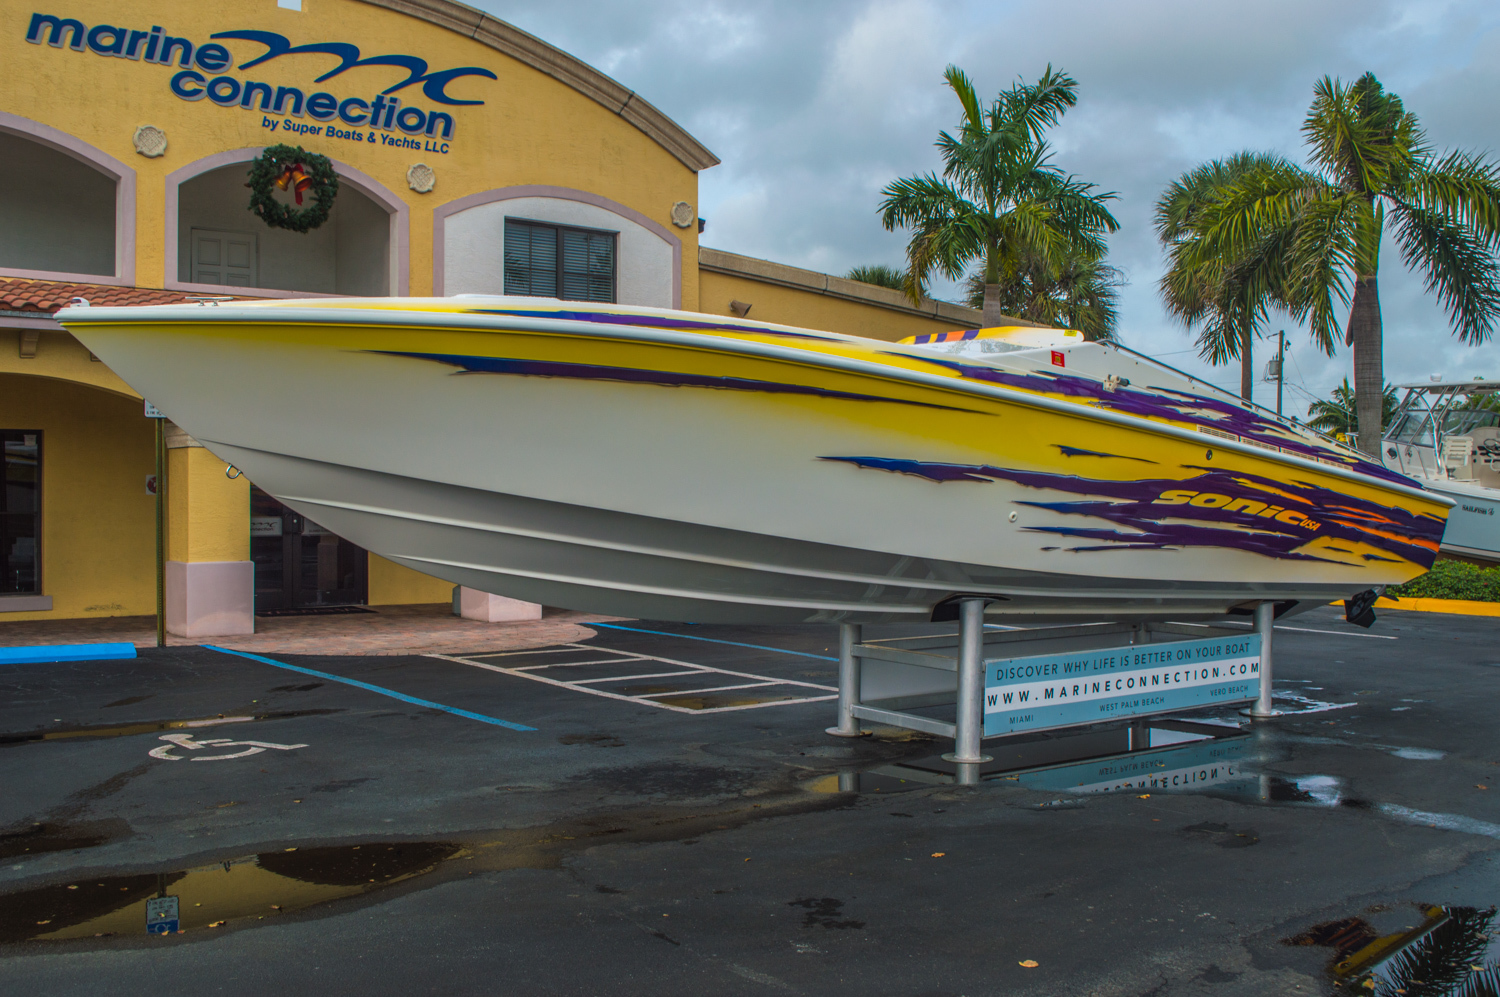 Thumbnail 7 for Used 2001 Sonic 31 SS boat for sale in West Palm Beach, FL